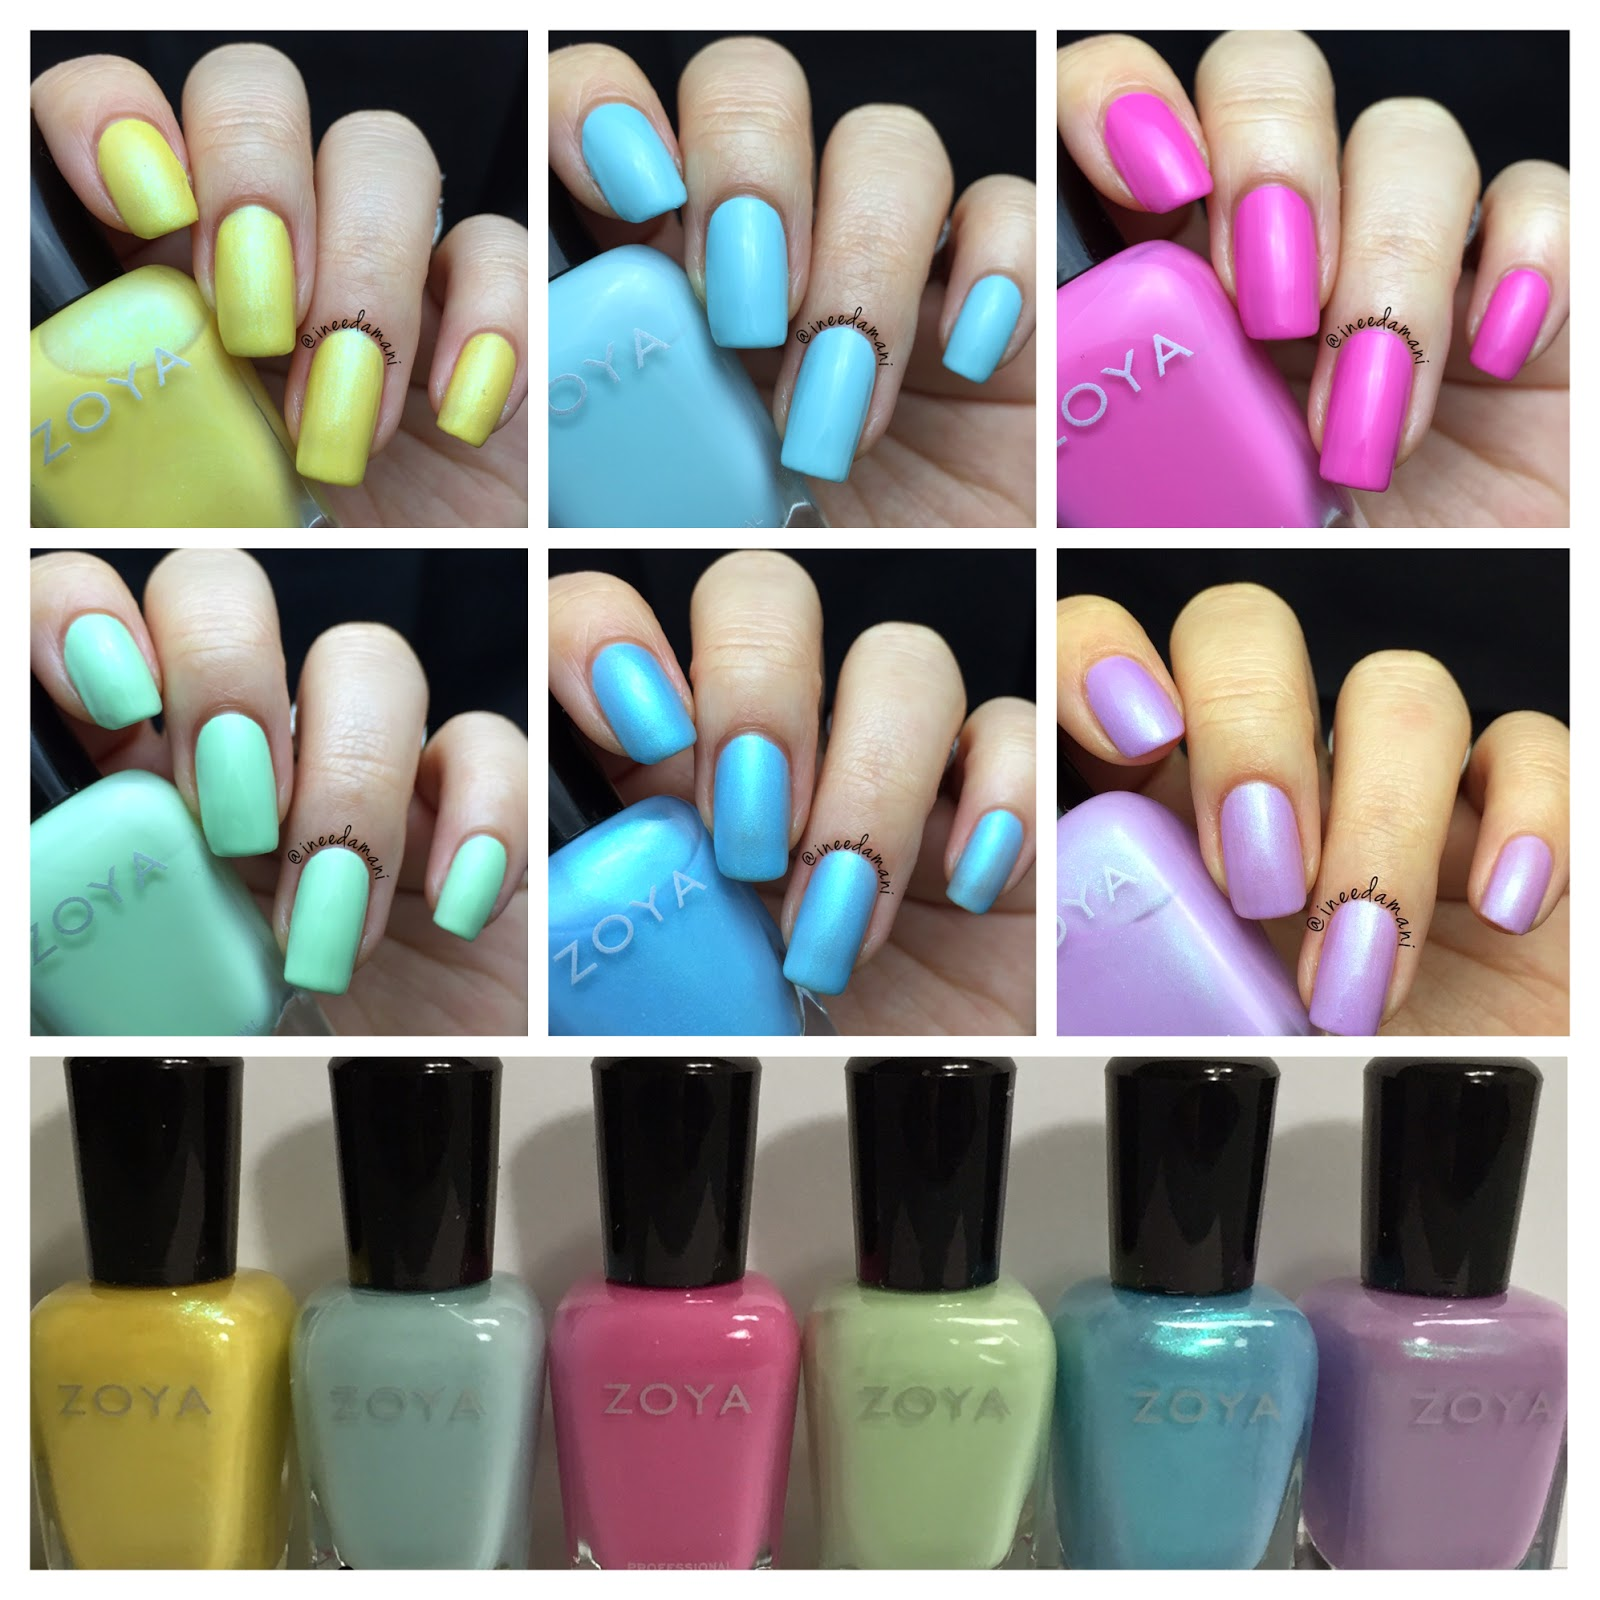 Nail Polish Addict: Zoya Naturel Satin 2015 Zoya Delight 2015